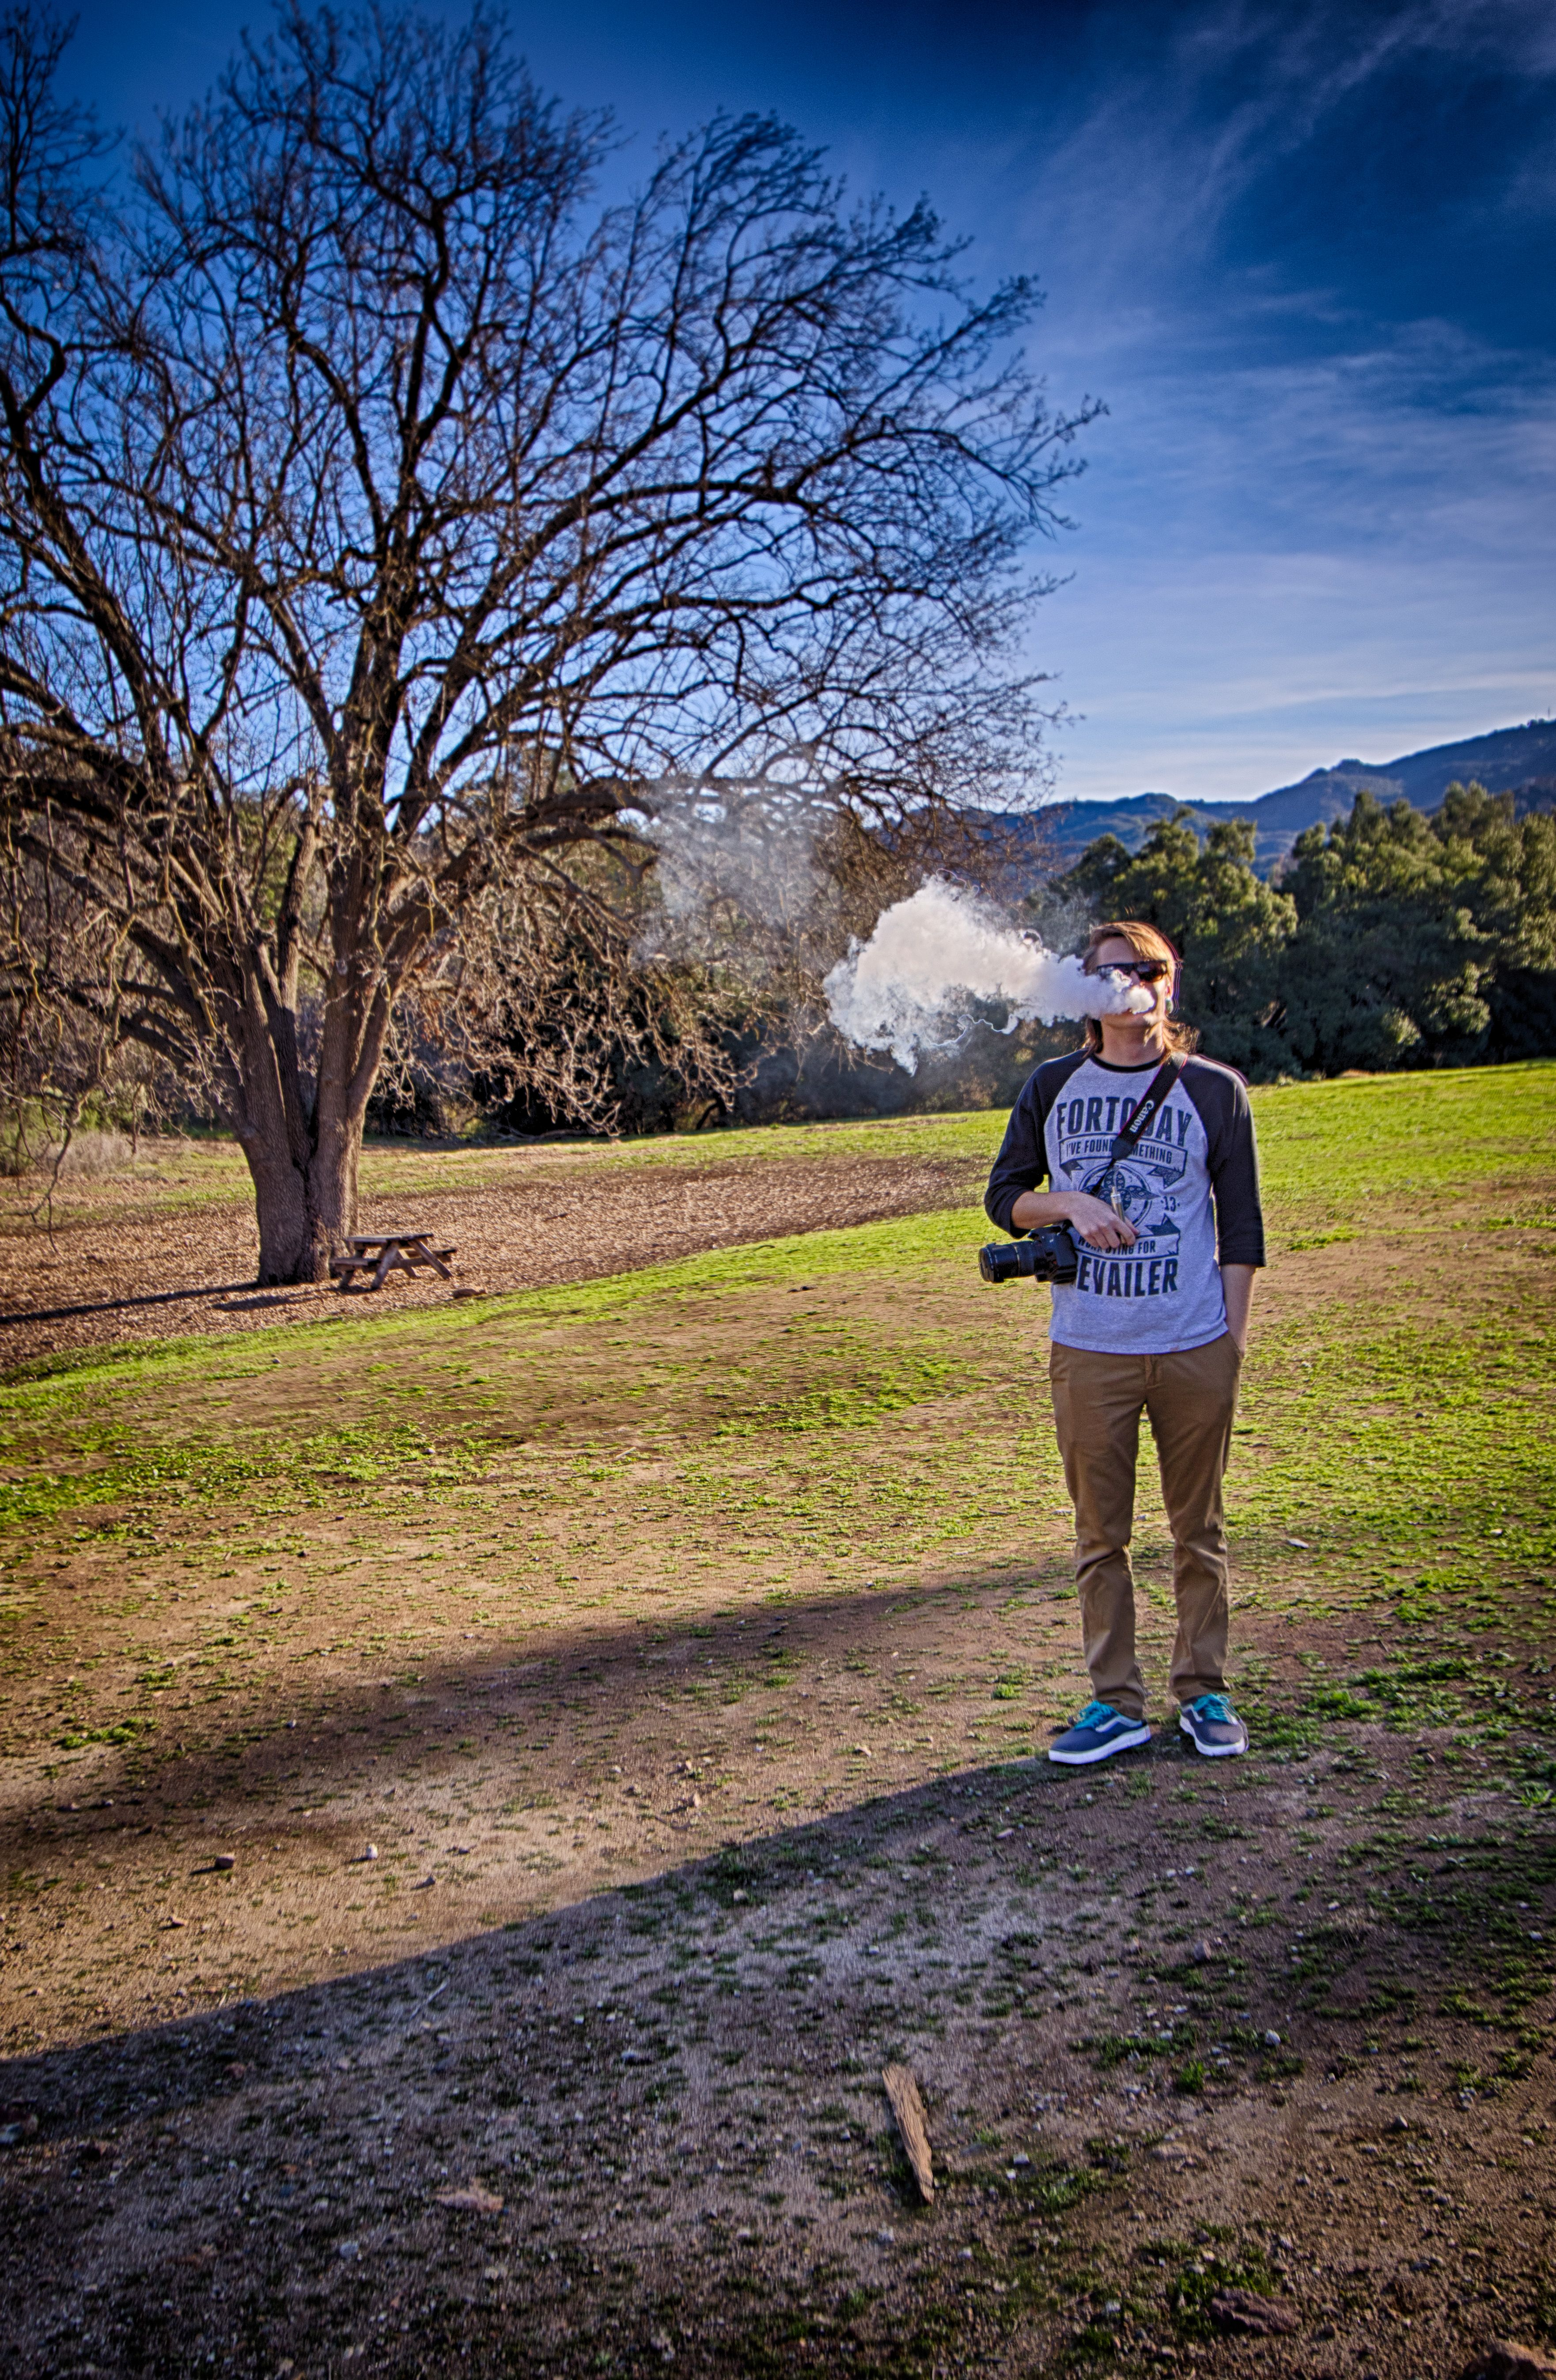 Vaping on the set of Ballistic Vapes last photo shoot. Messing around with HDR to see the effect it has on a cloud.